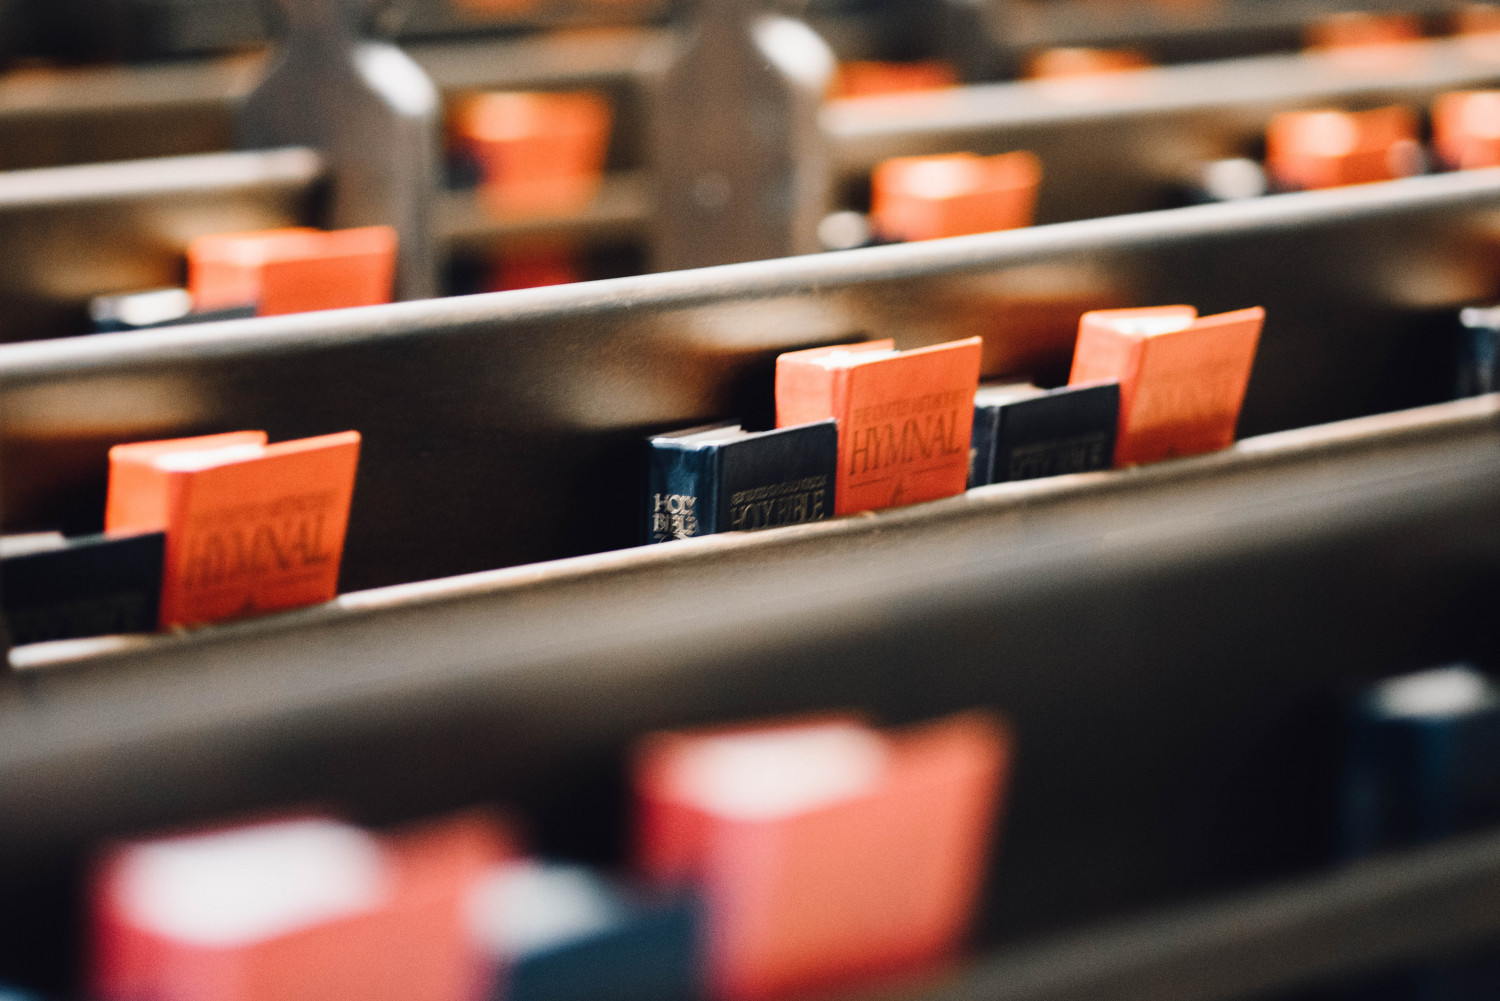 Image of church pews with bibles and psalm books.